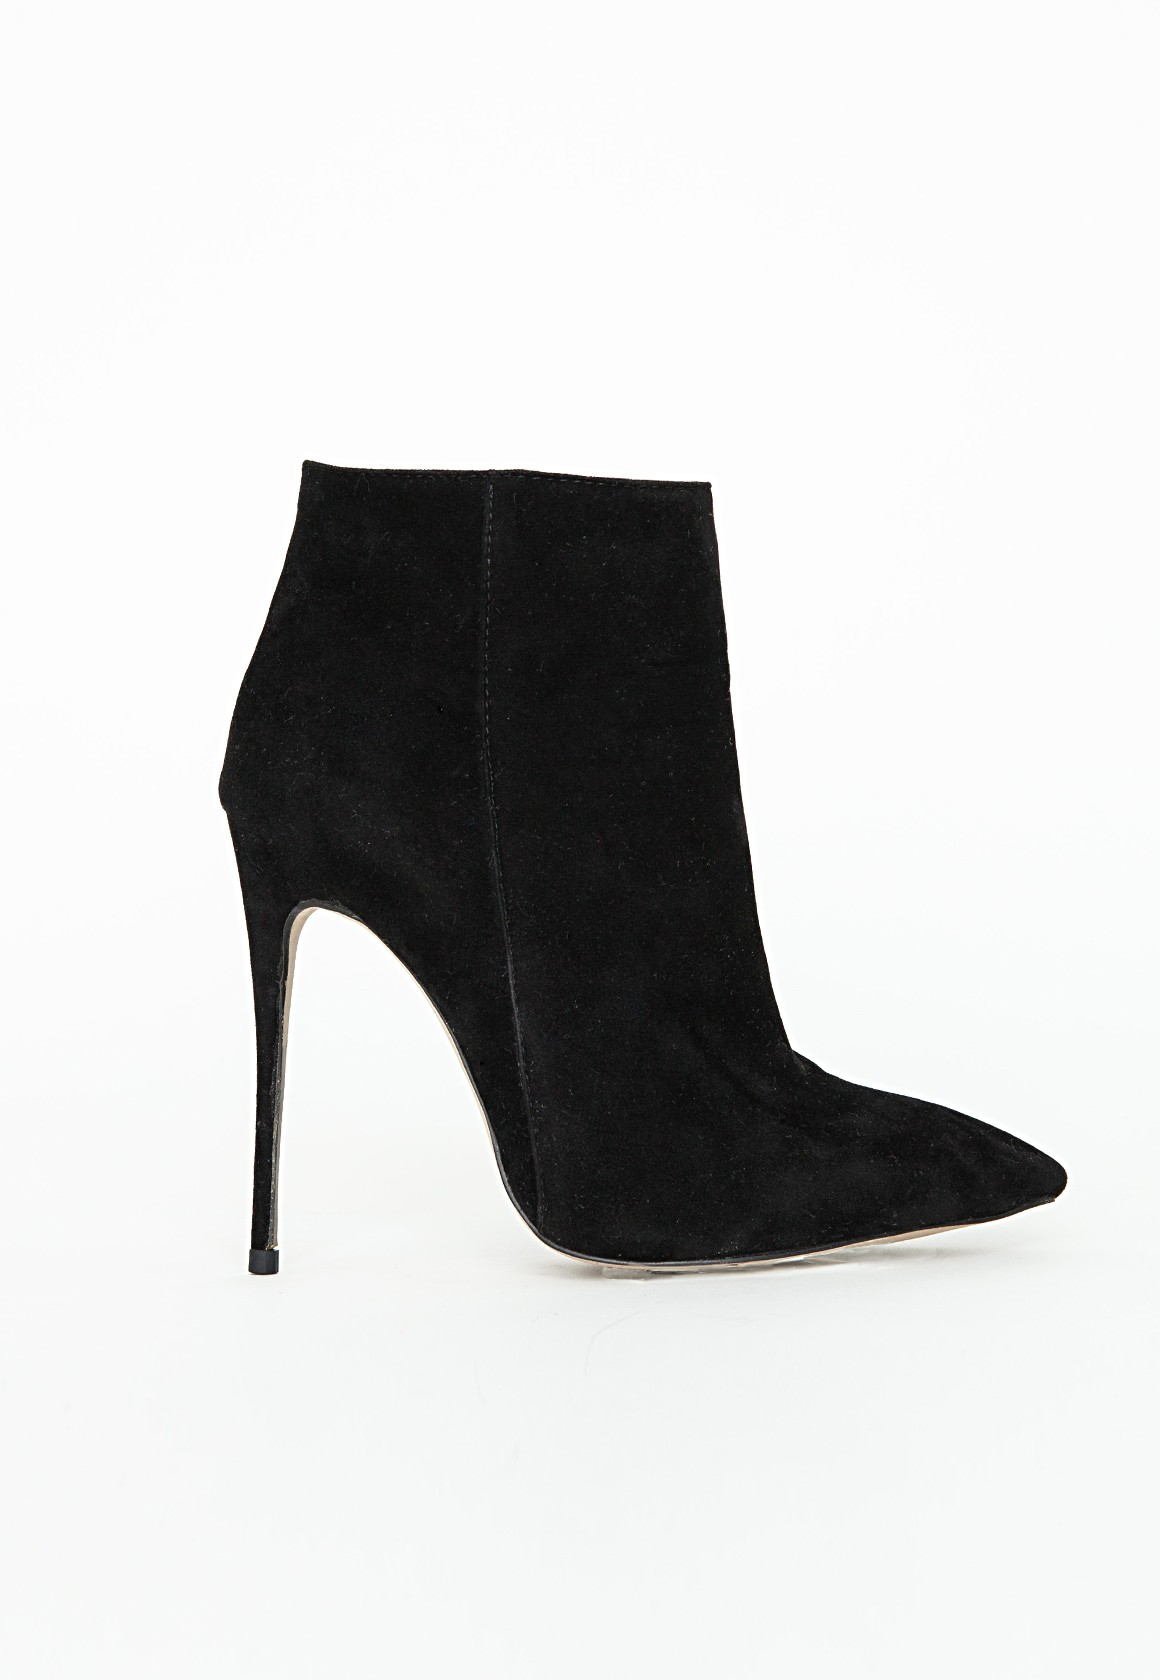 Ankle Boots Heels xUF3Cczh